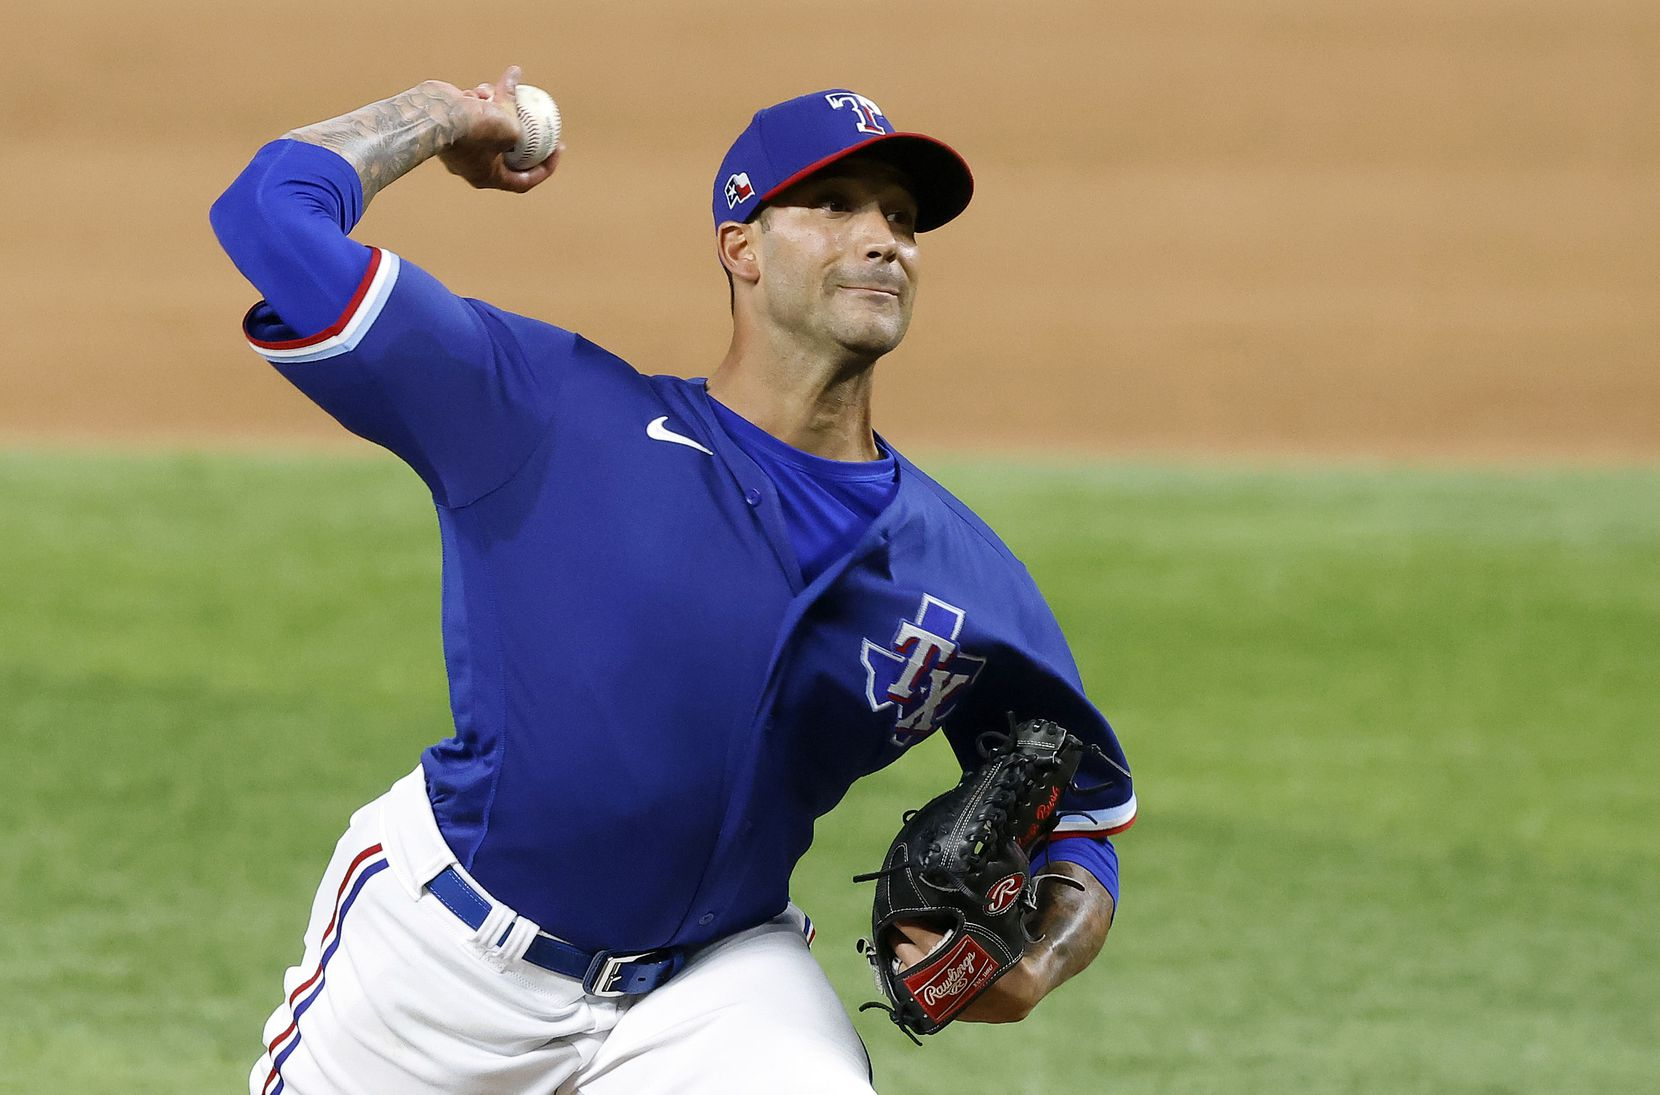 Texas Rangers relief pitcher Matt Bush throws against the Milwaukee Brewers in the eighth inning at Globe Life Field in Arlington, Texas. The teams were playing in an exhibition game, Monday, March 29, 2021.